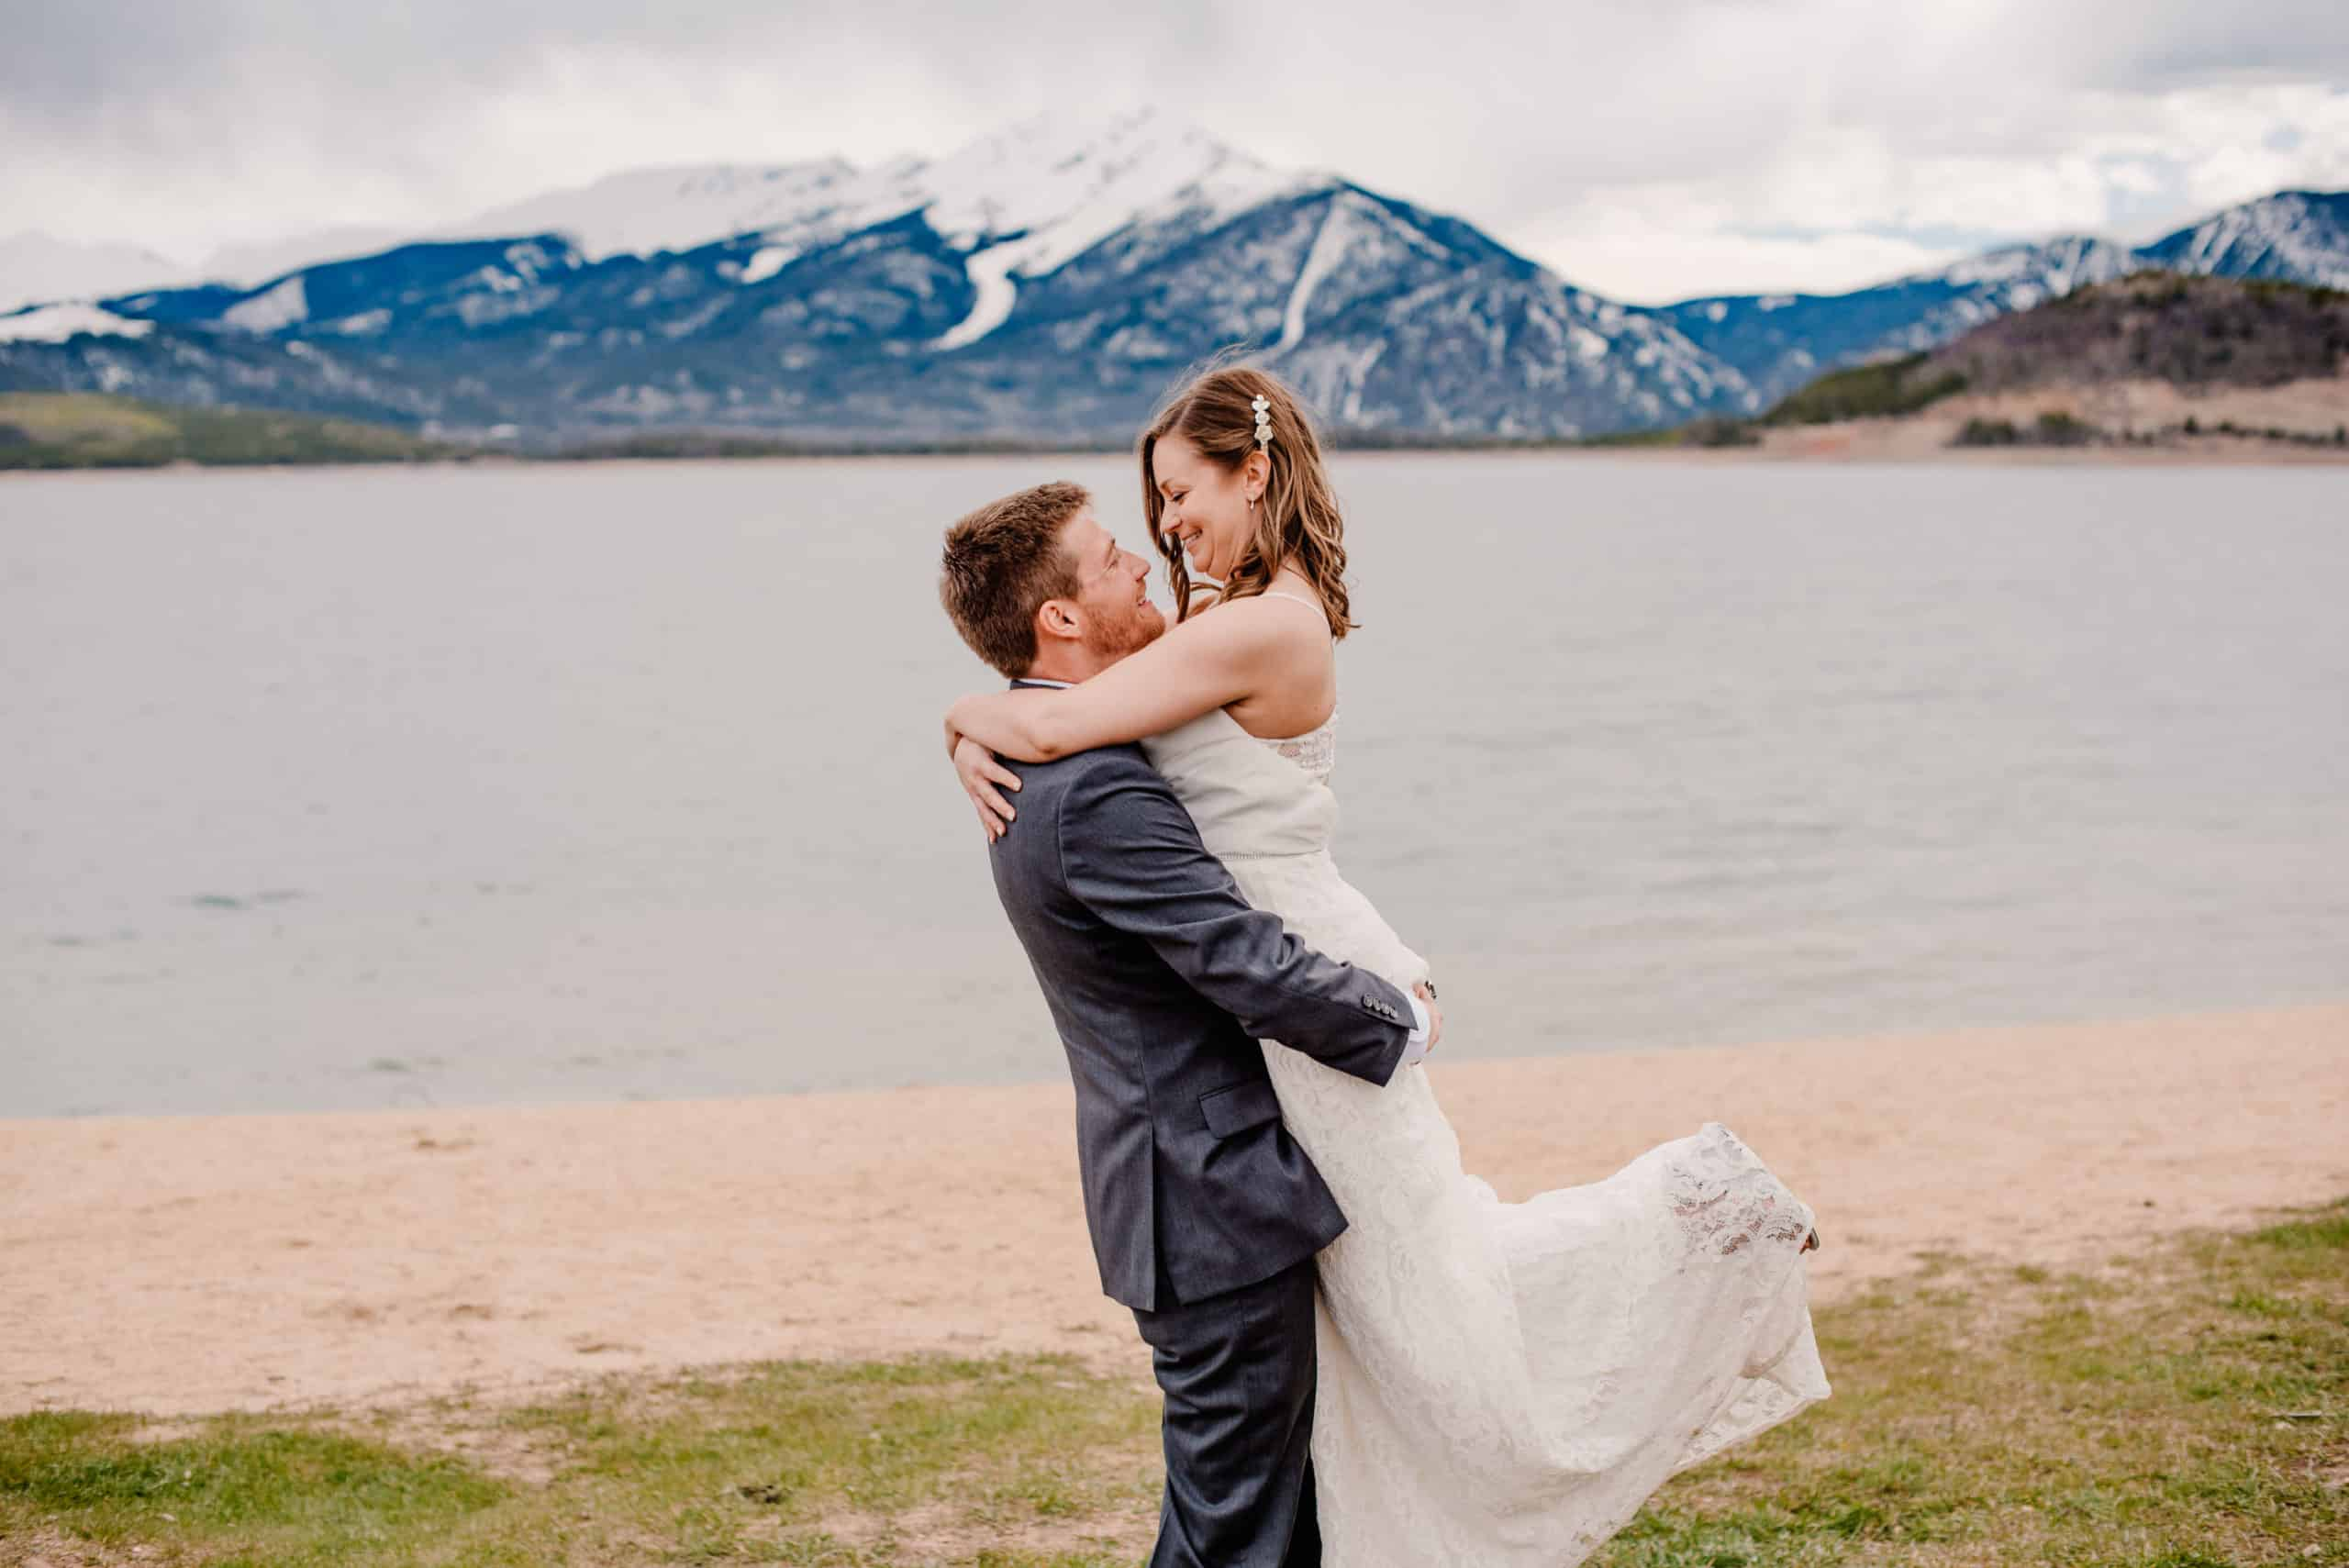 Groom lifting up bride near water front with mountains in the background